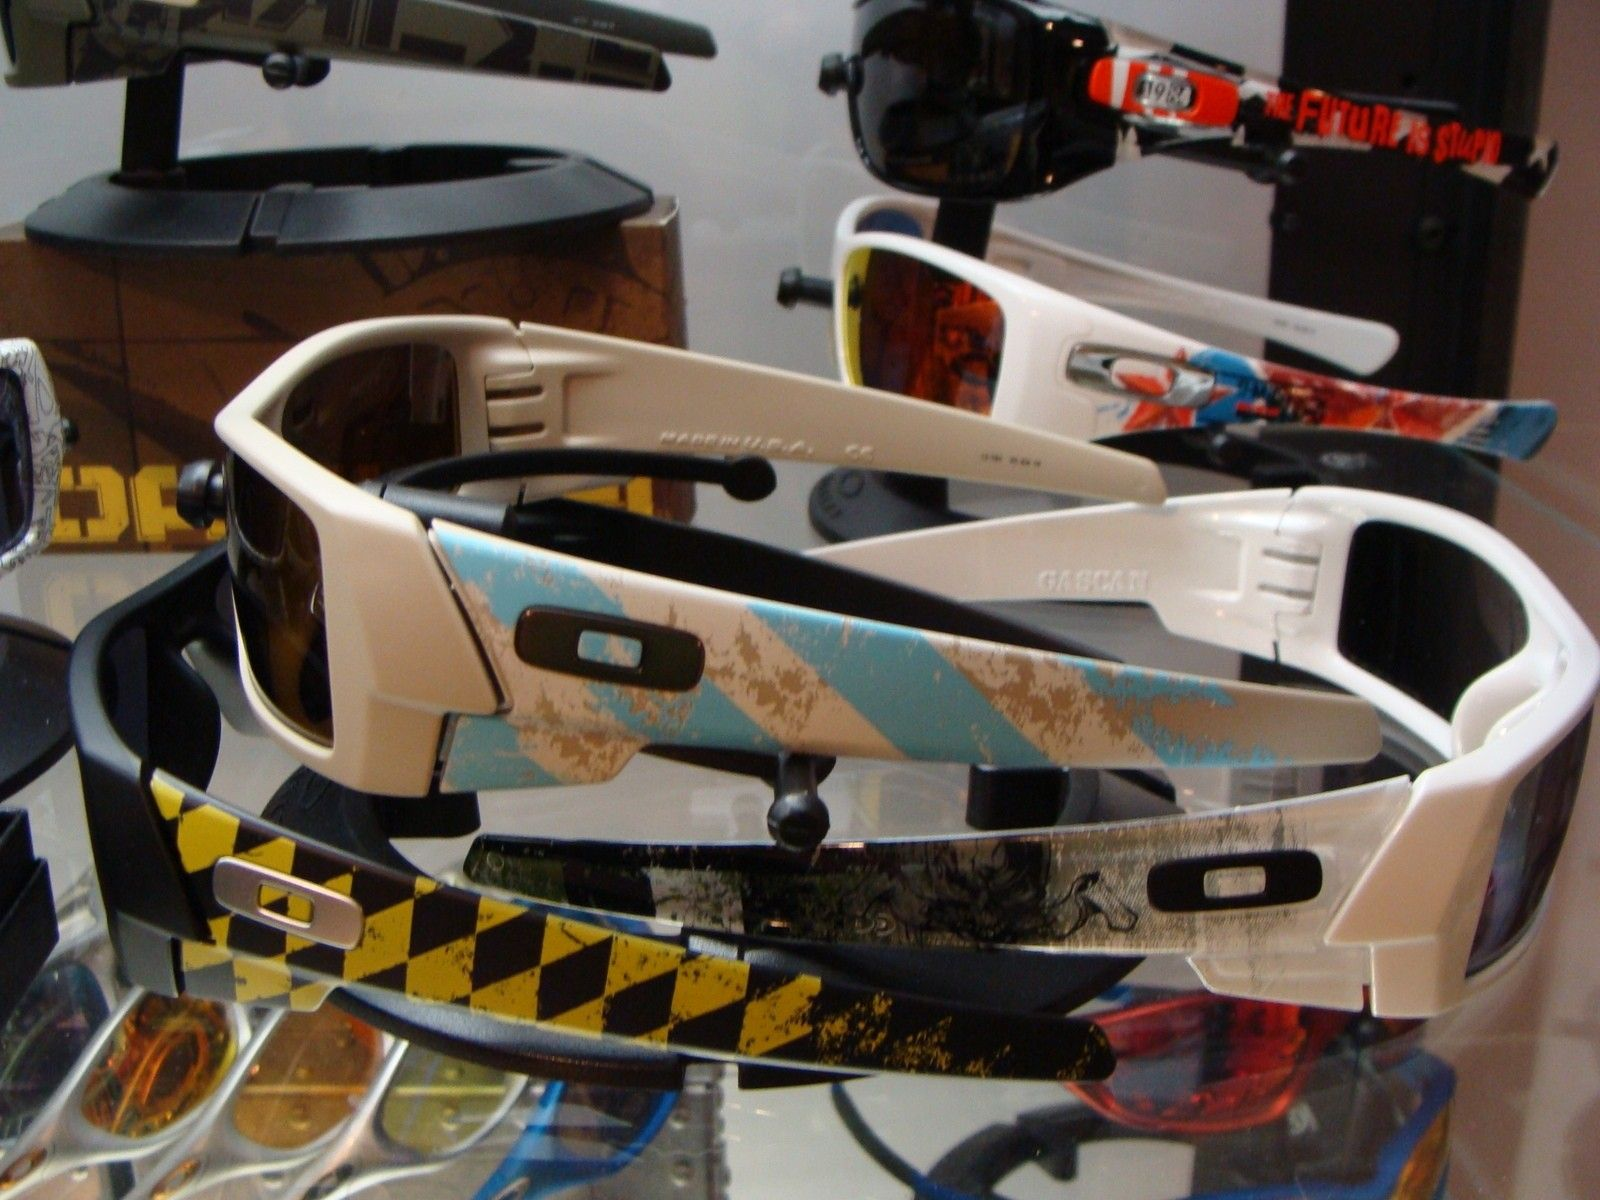 Preview Of My Oakley Collection - DSC07635.JPG